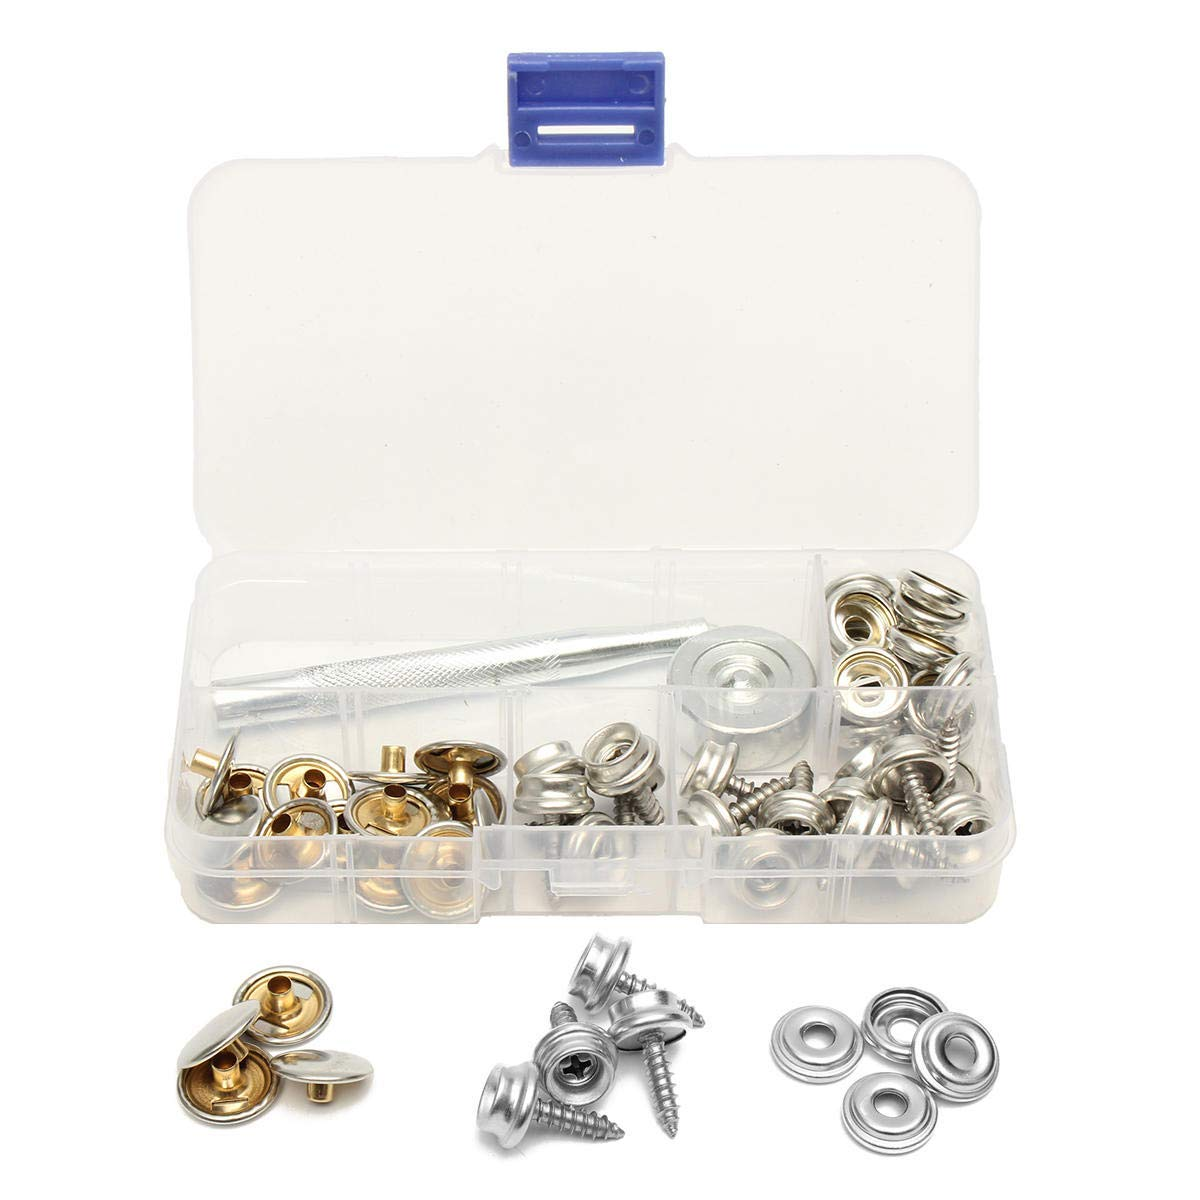 62Pcs Stainless Steel Press Studs Screw Bases Snap Fasteners Kit for Leather - Fasteners Threaded Rods & Studs - 20 x Snap Fastener Self-tapping Screw Stud, 20 x Snap Fastener Sockets